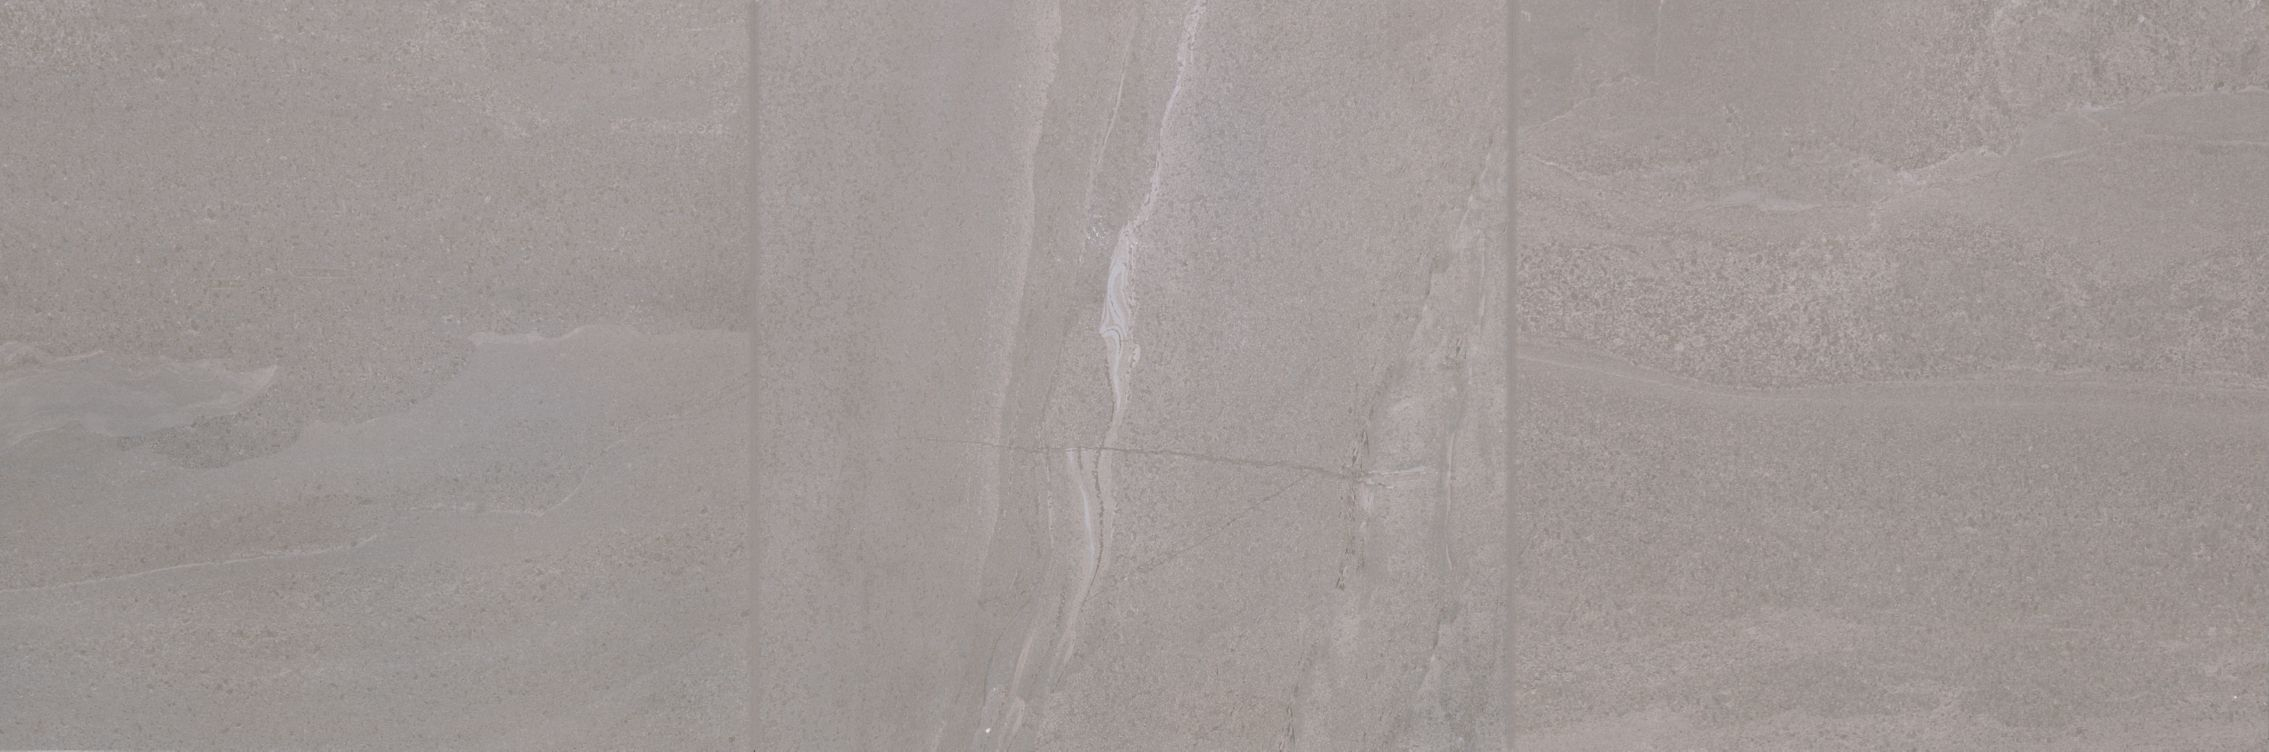 CeramicPorcelainTile GrandTerrace T834F-GB94-12x12-FieldTile-Porcelain LuxuryGrayPolished